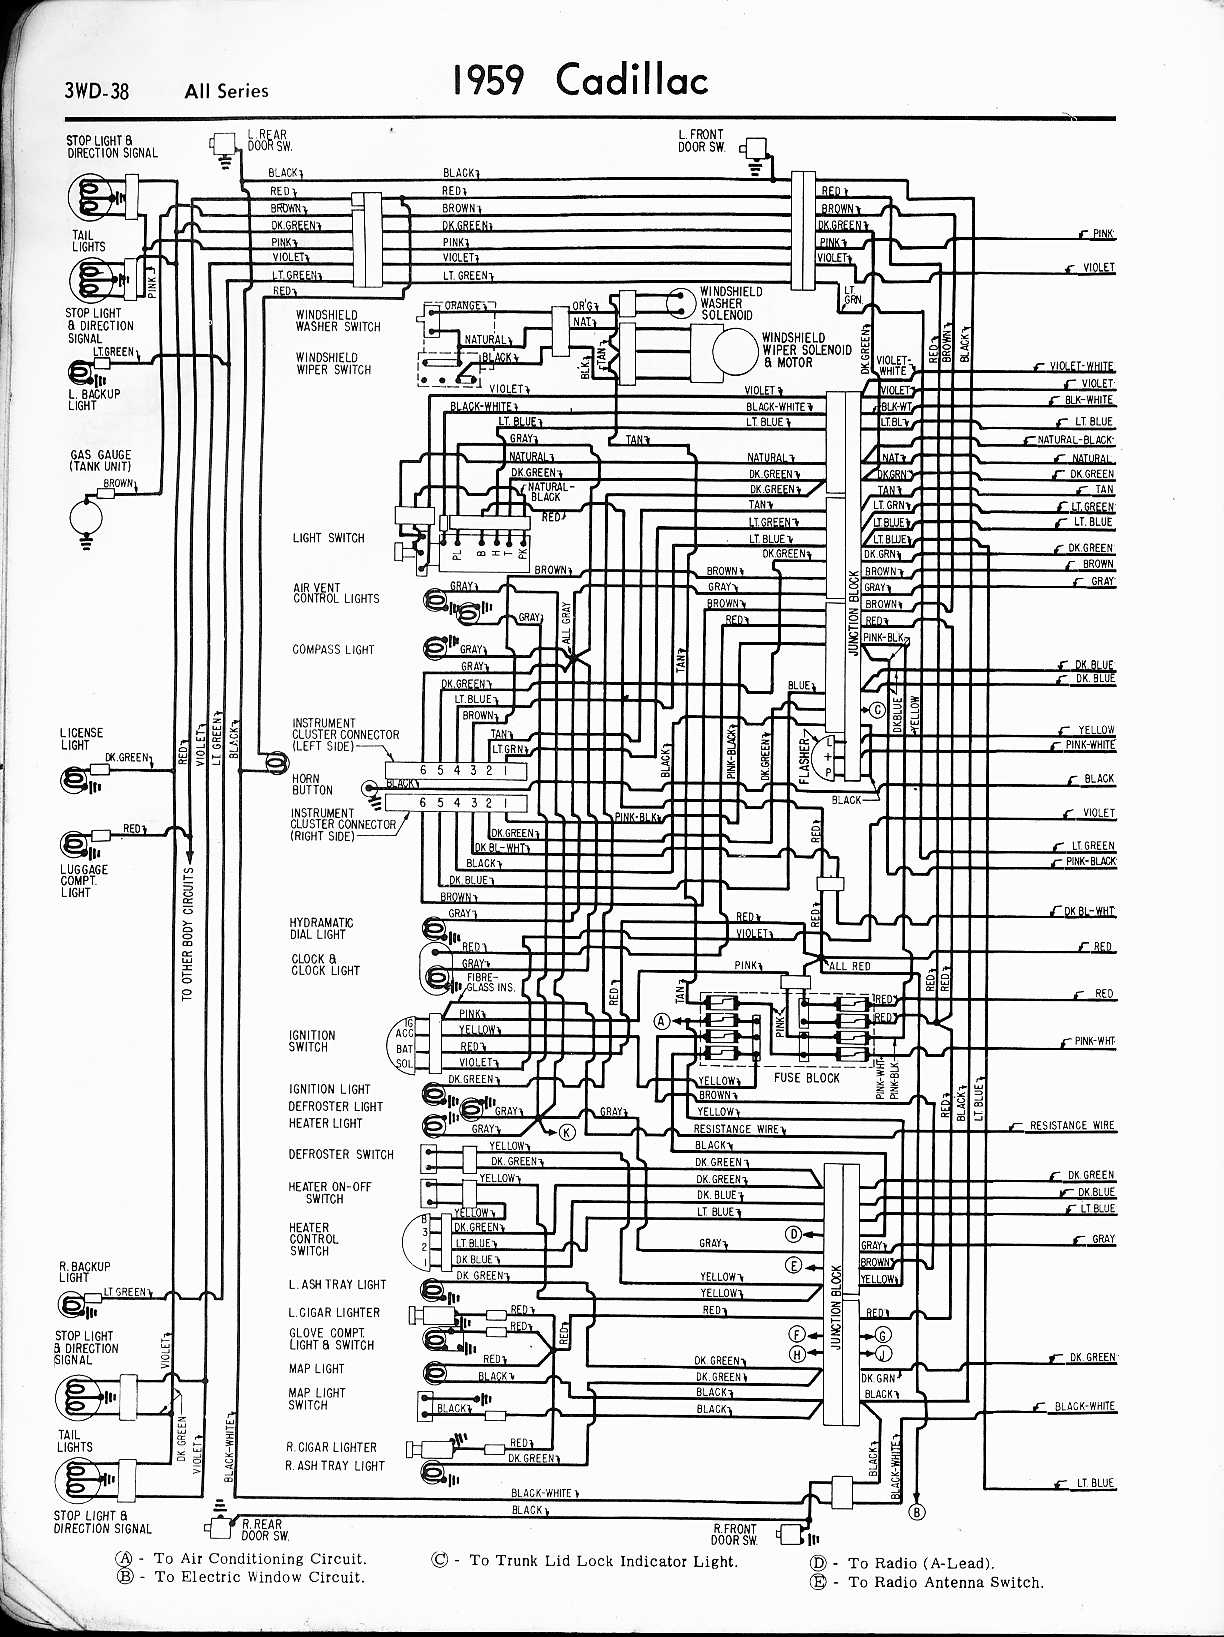 1940 Cadillac Wiring Diagram Schematic